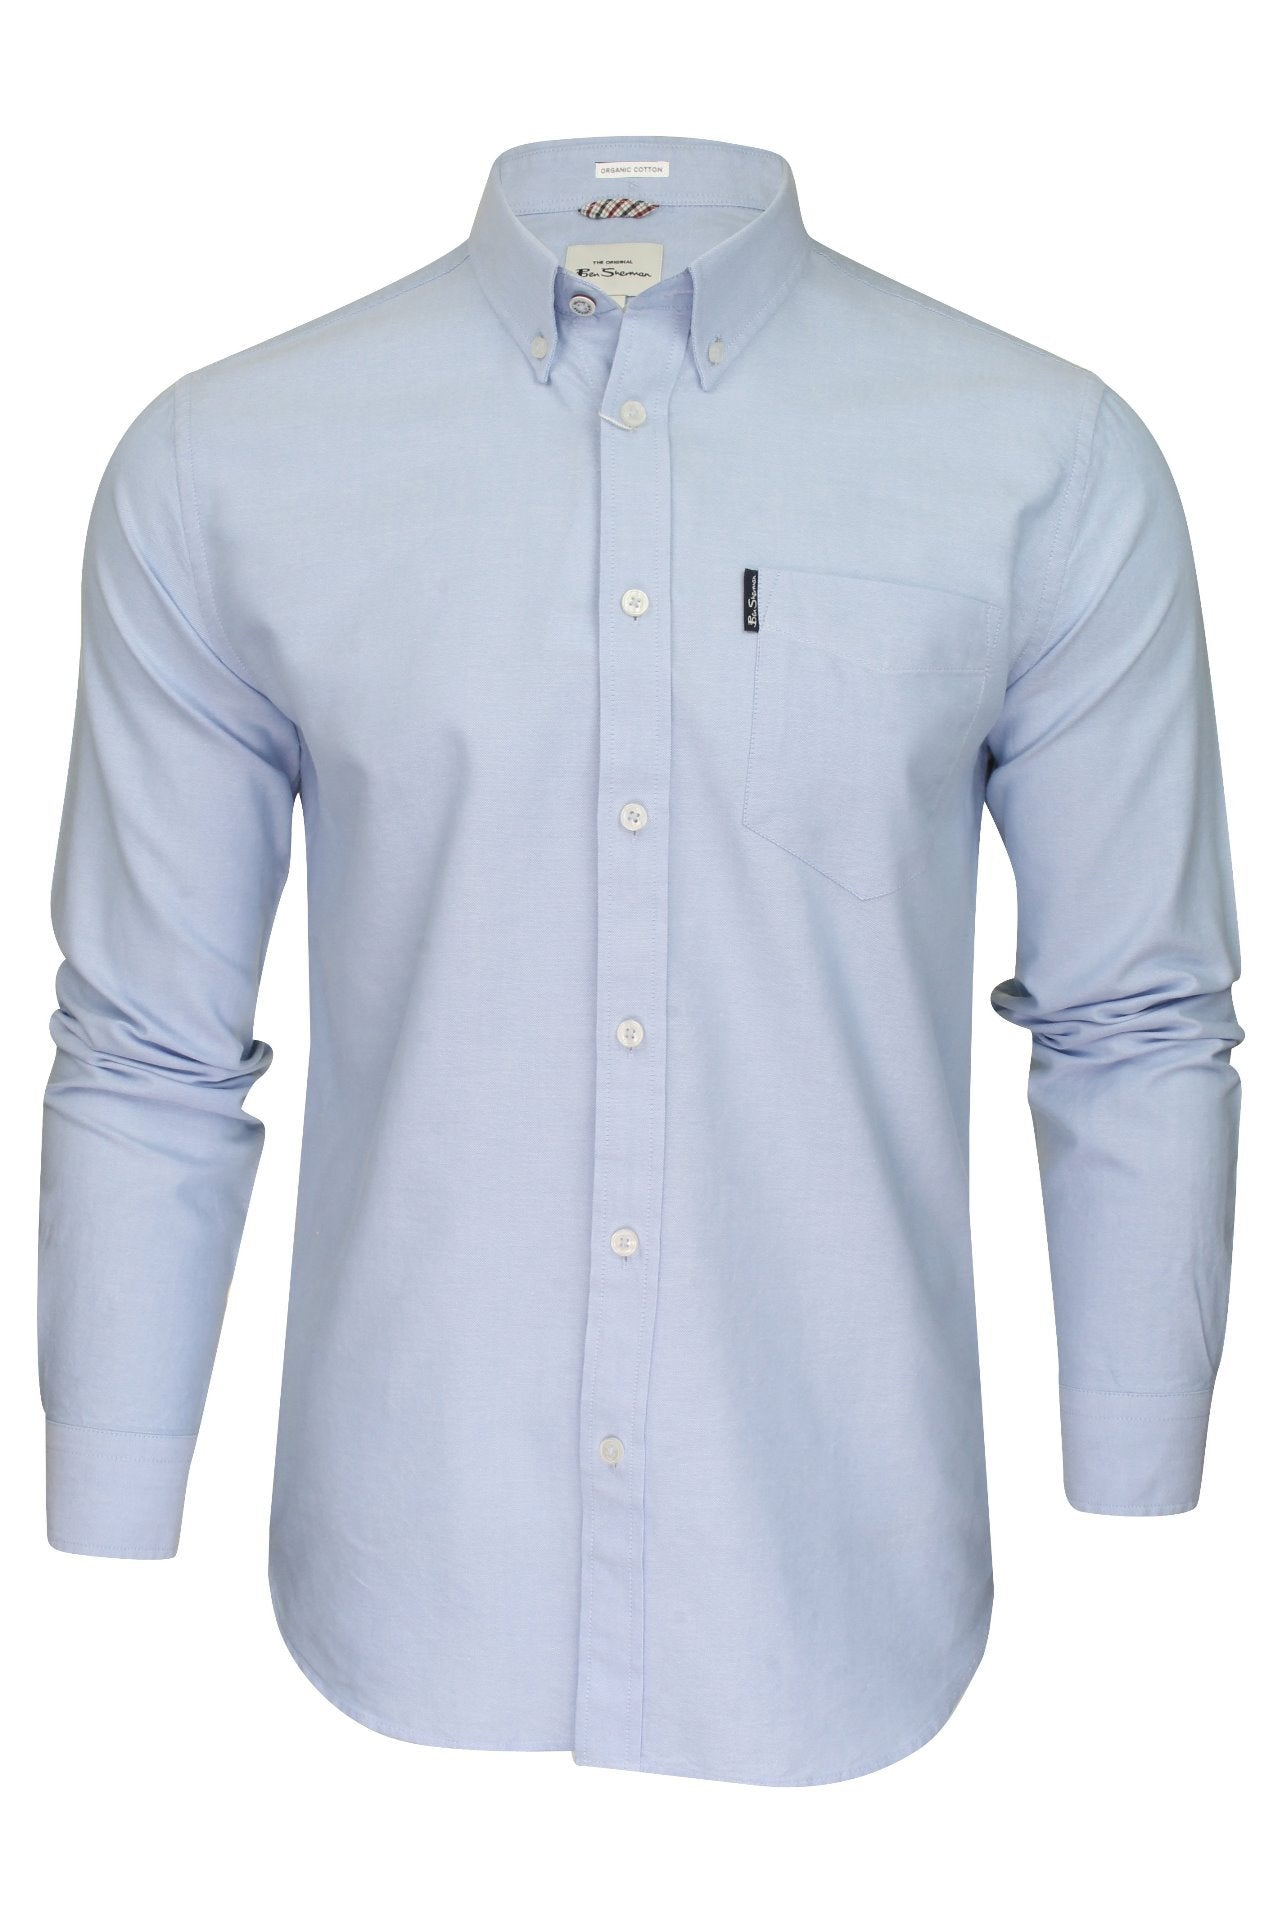 Ben Sherman Mens Oxford Shirt - Long Sleeved-Main Image